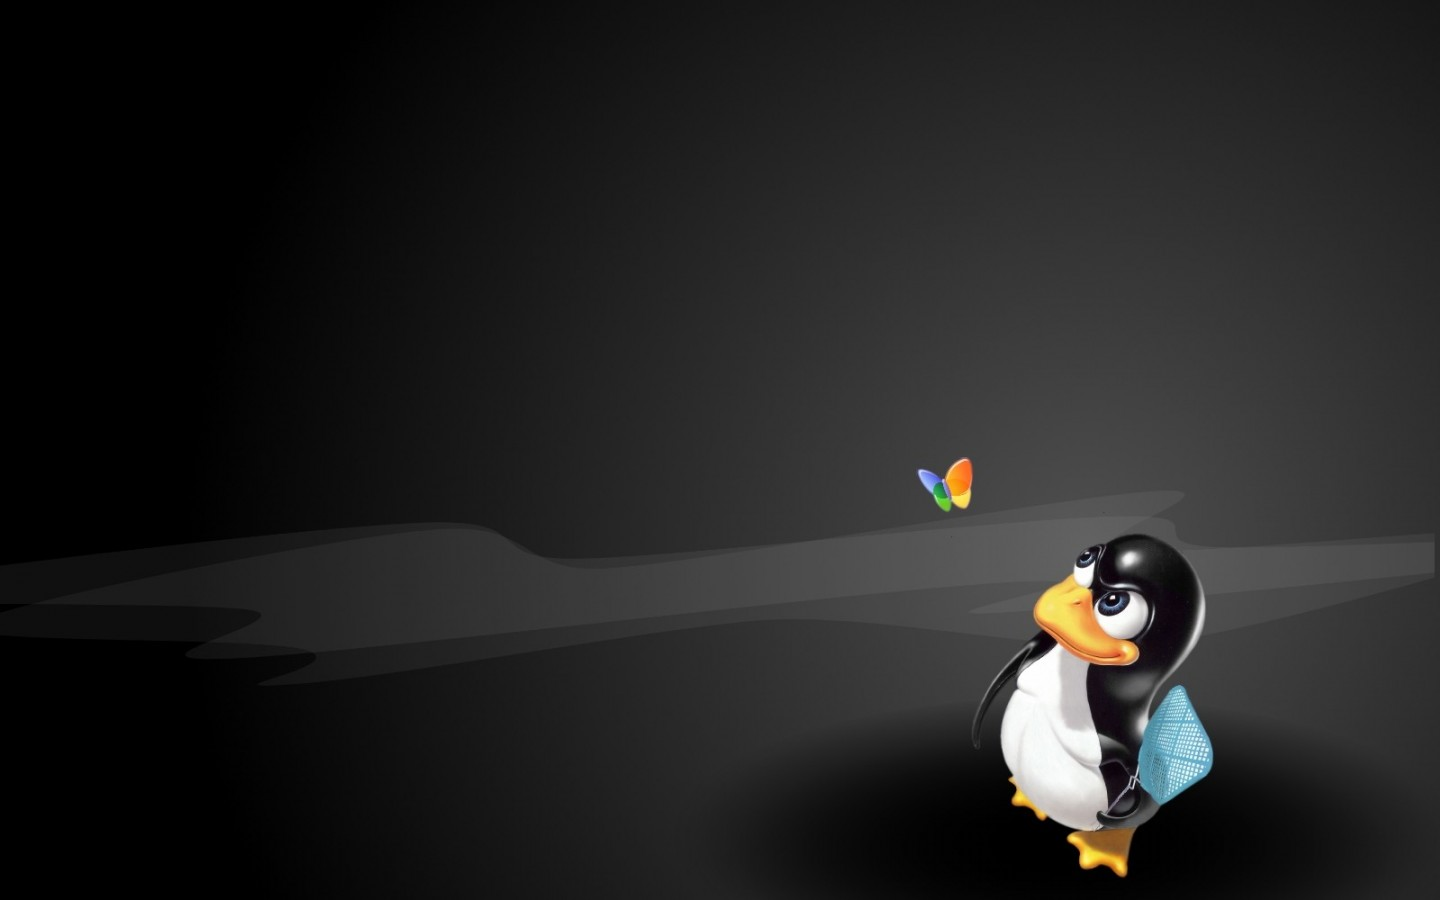 Linux Wallpapers High Quality Download 1440x900